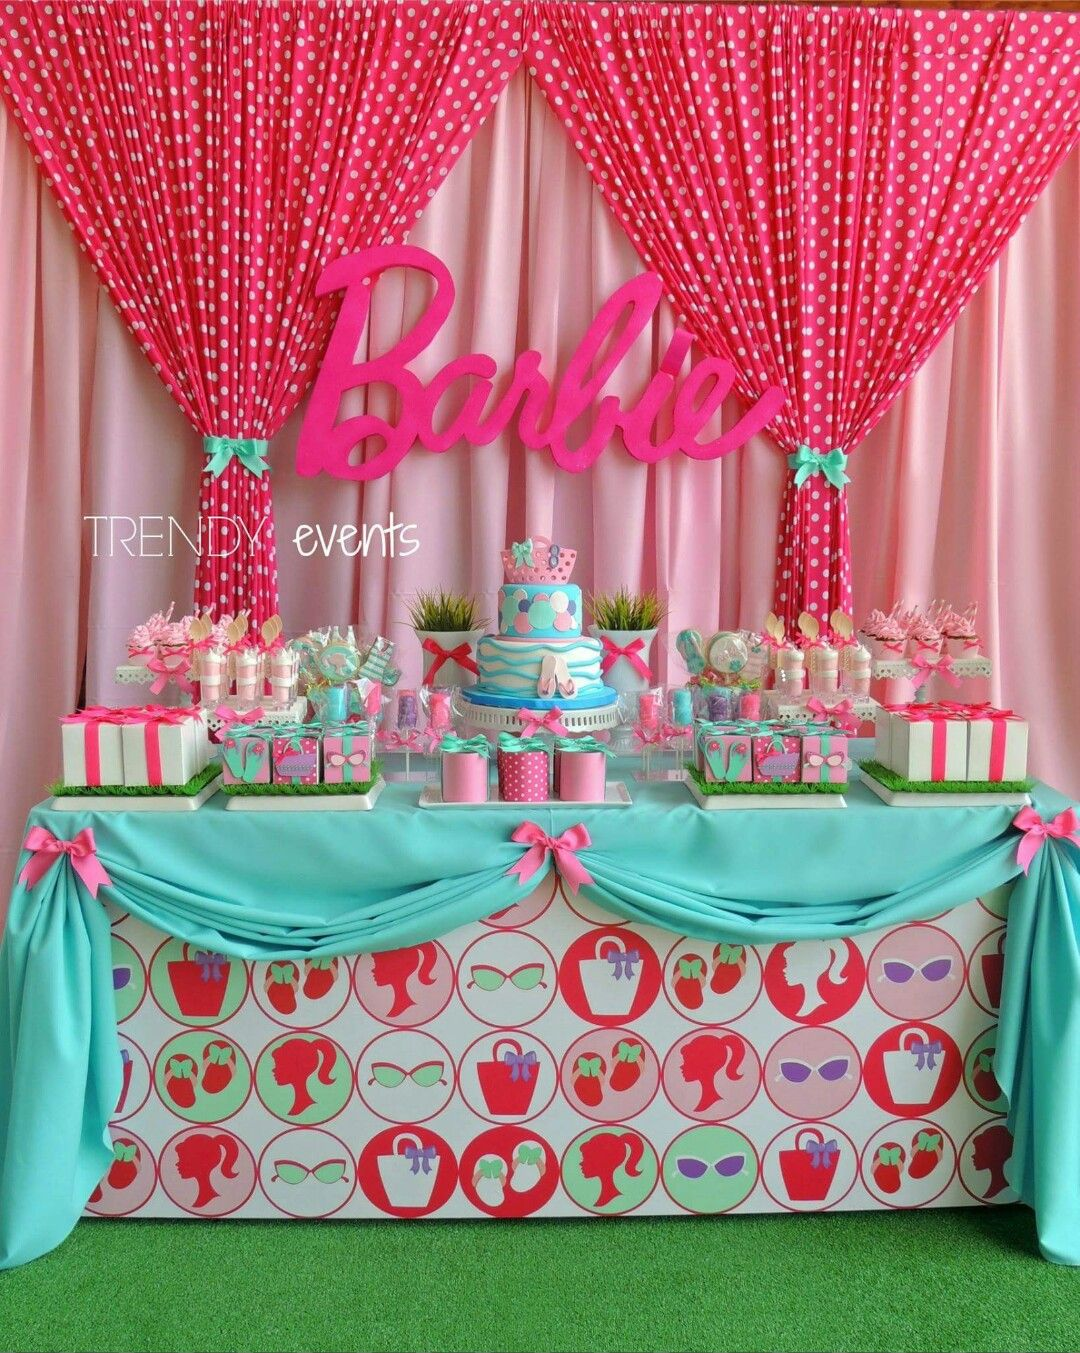 Pin by Erica Spiess on Ava's 4th Birthday | Barbie ...